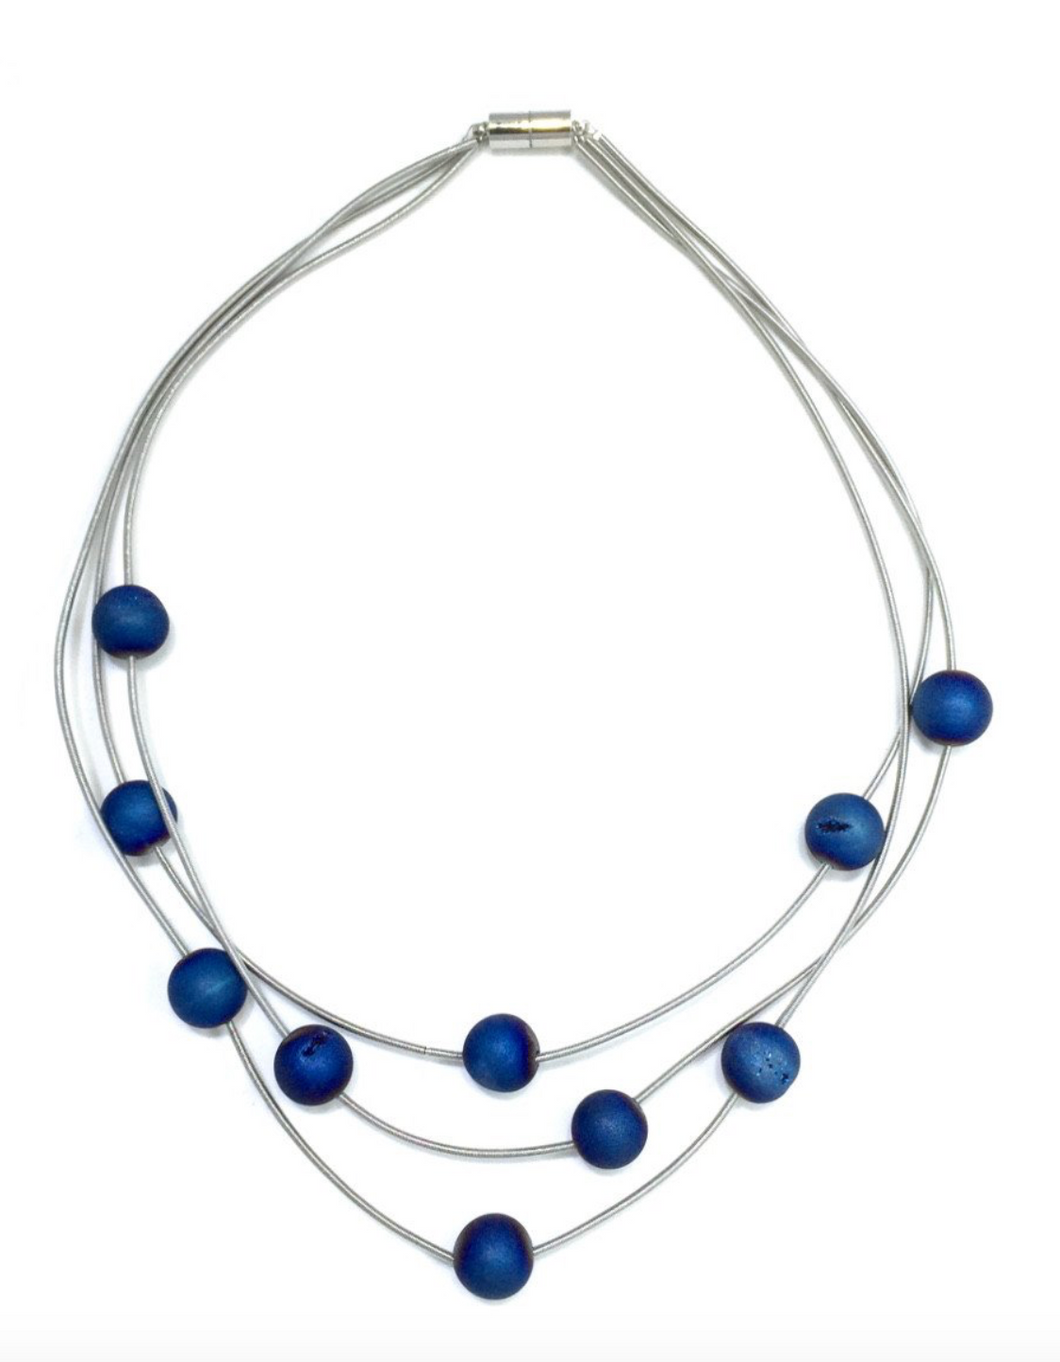 Triple Strand Blue Geode Necklace